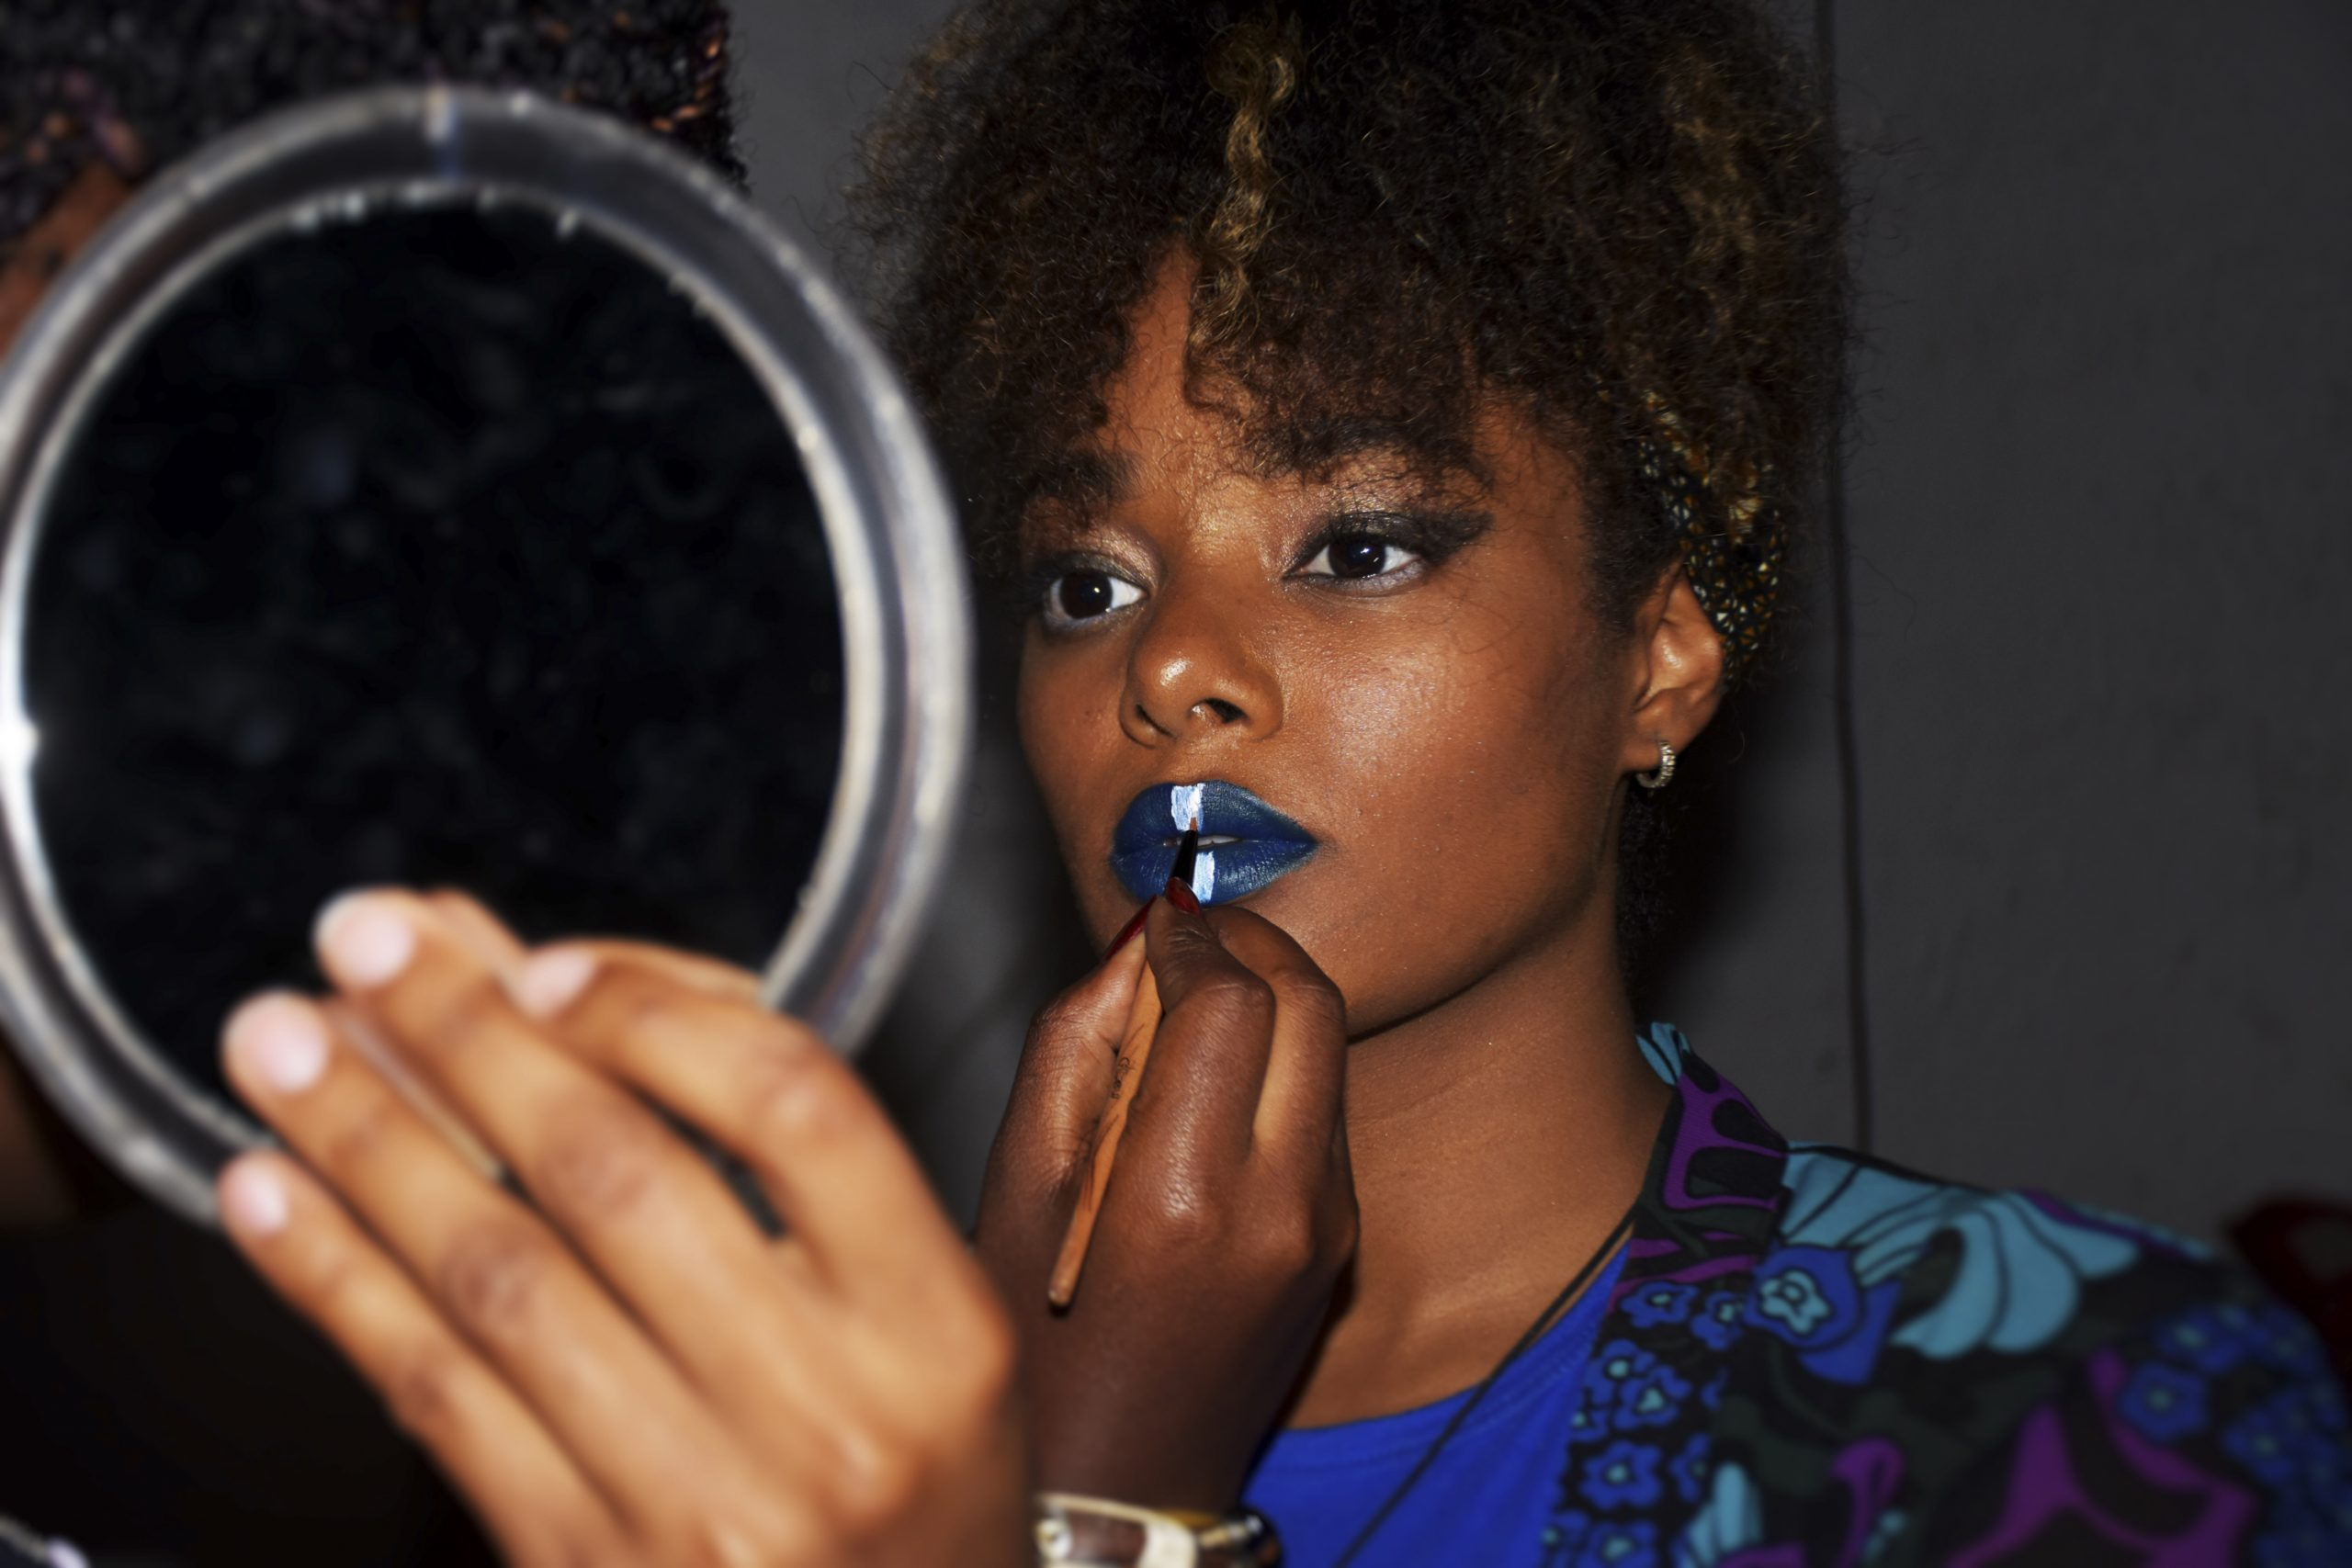 Color photo by Ley Uwera of women applying make up at Goma fashion week, Democratic Republic of the Congo